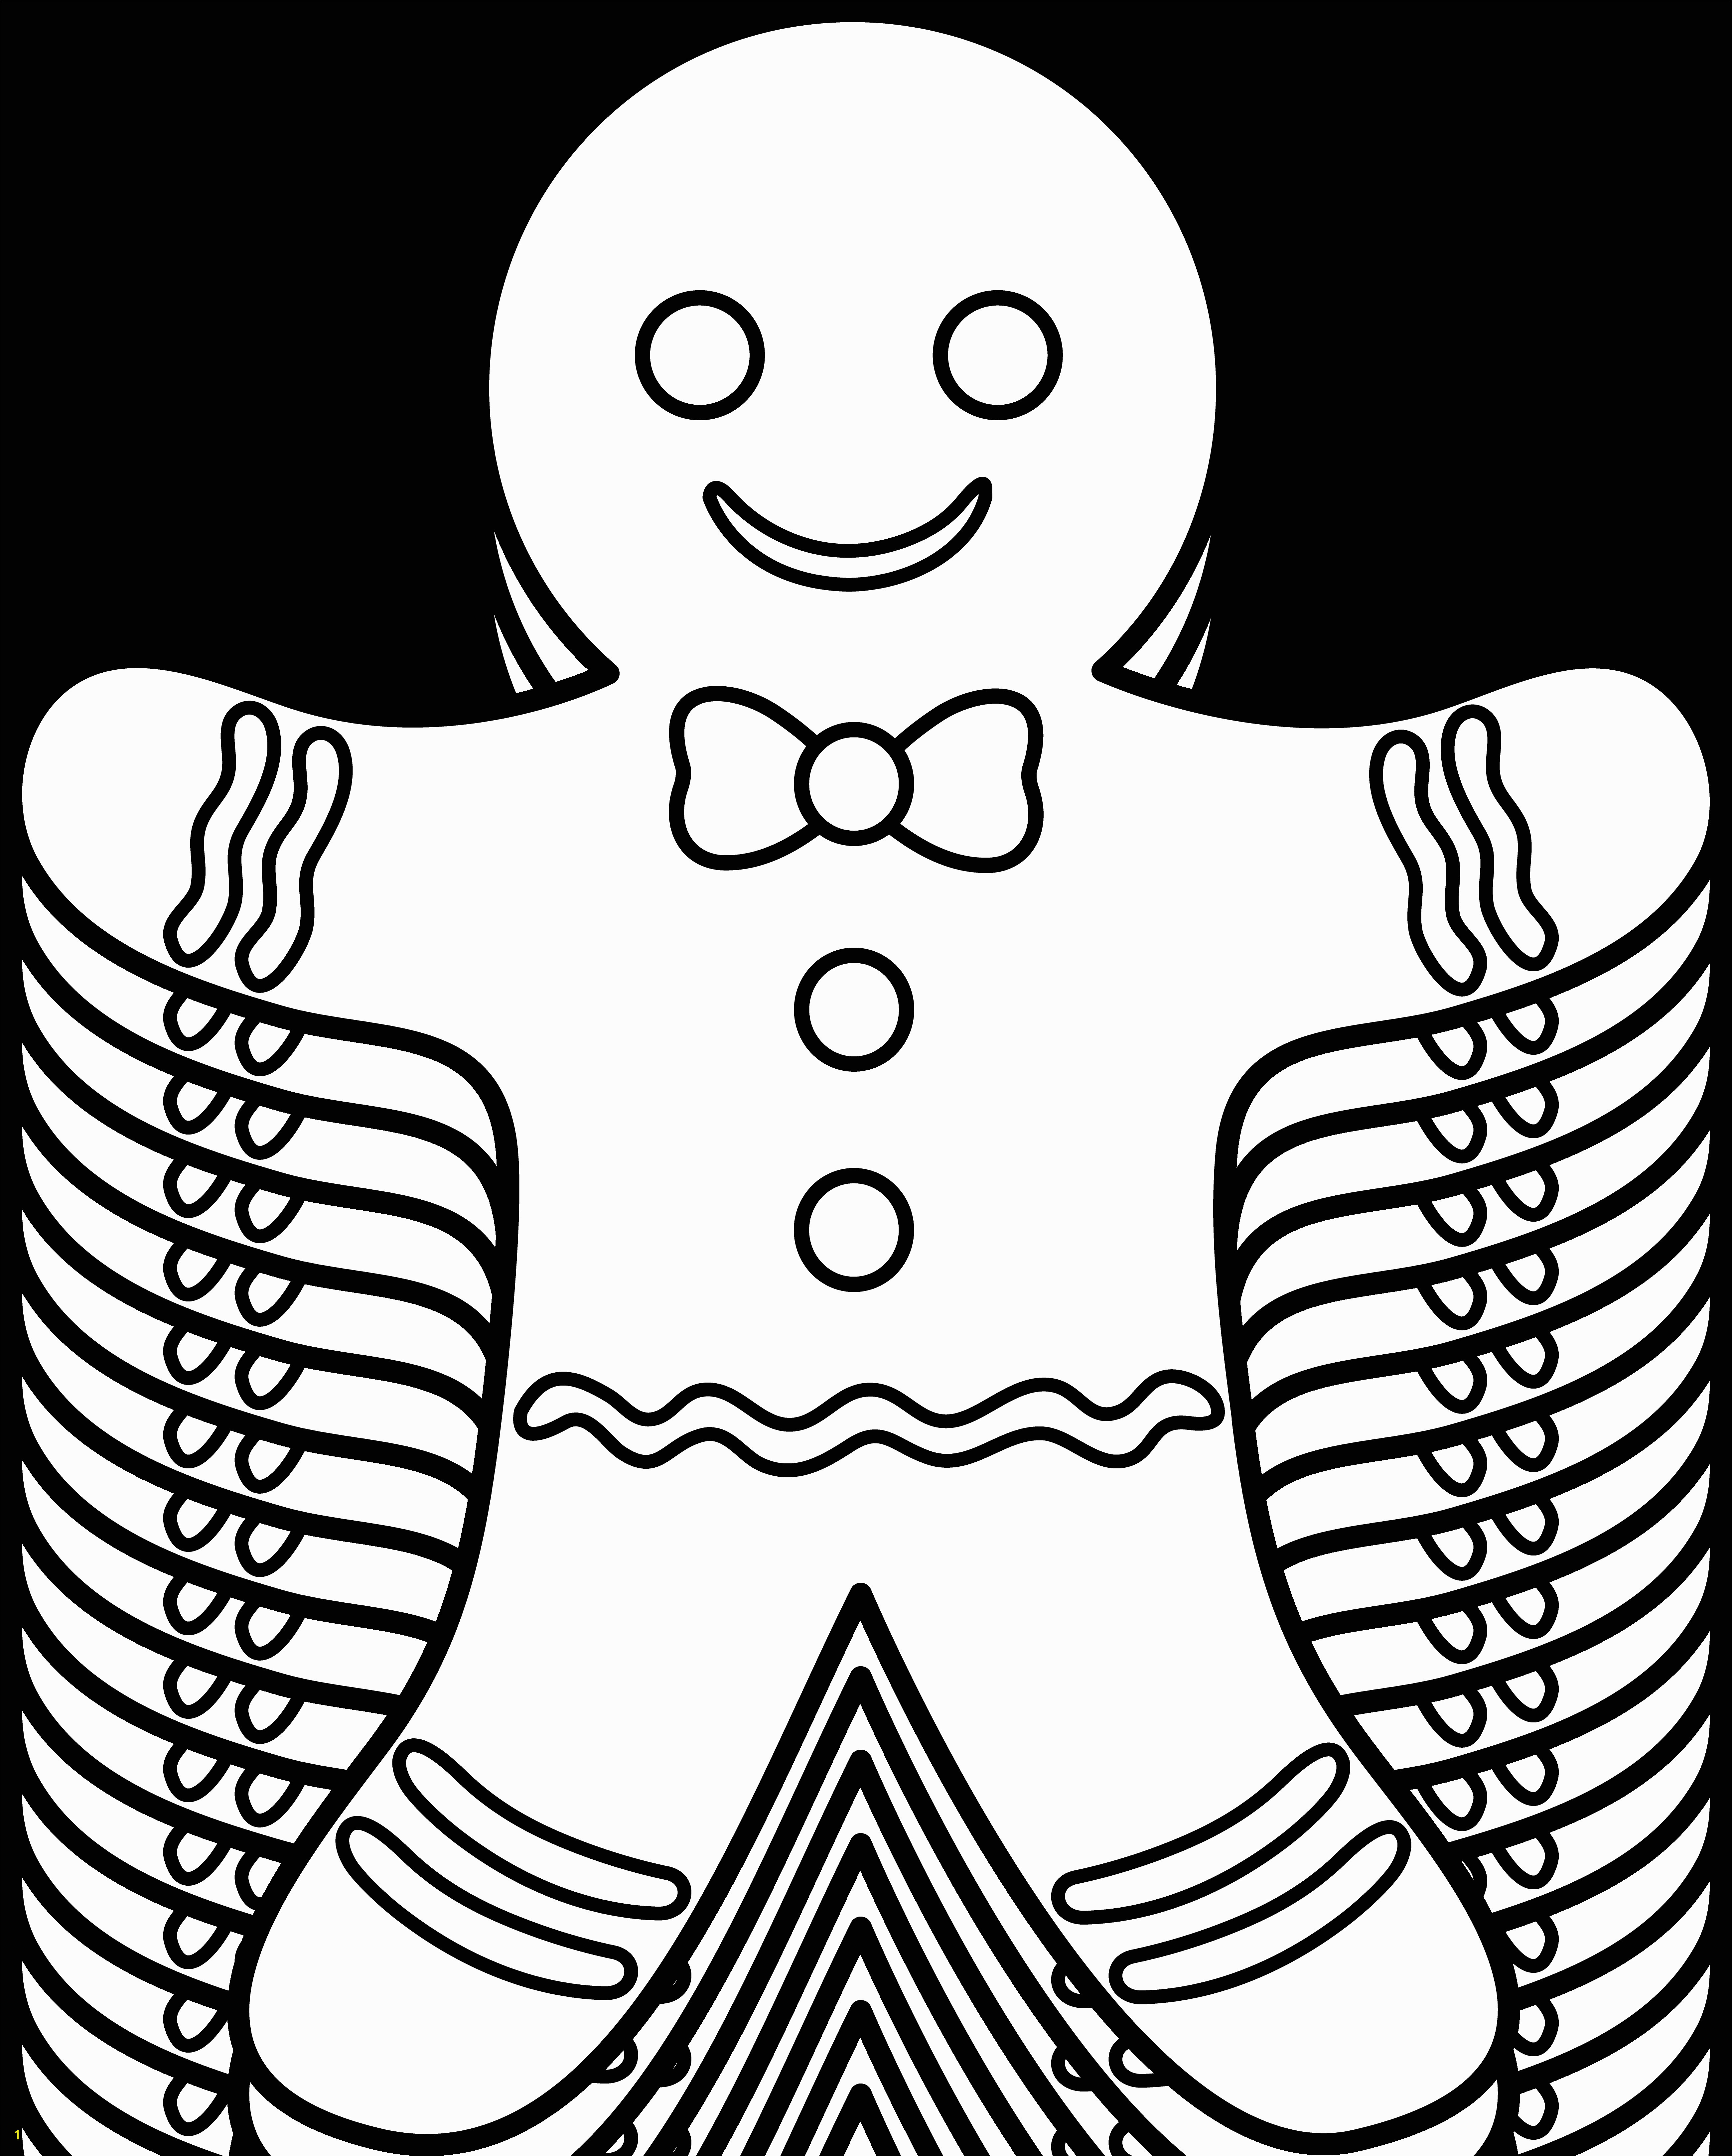 Christmas Gingerbread House Coloring Pages Gingerbread Man Coloring Pages Free